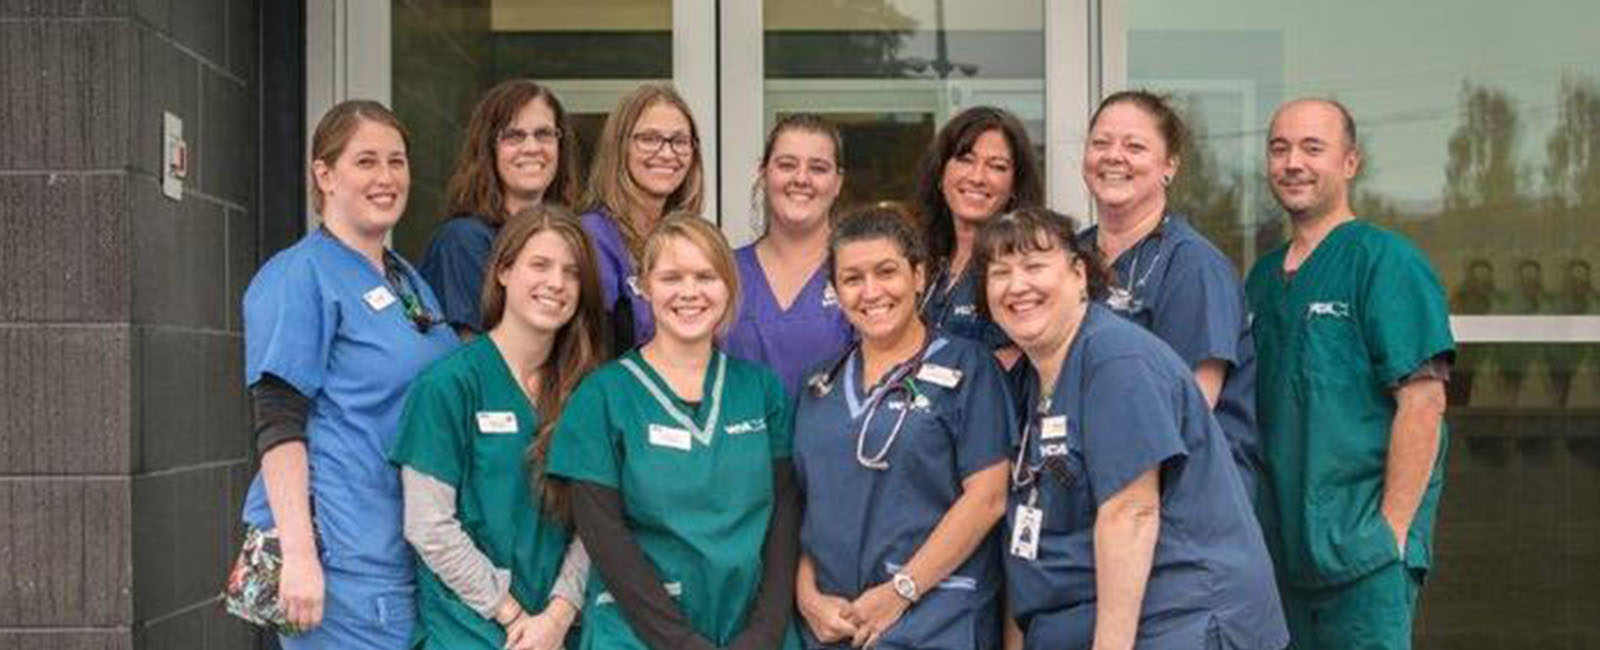 Homepage Team Picture of VCA South Shore (Weymouth) Animal Hospital